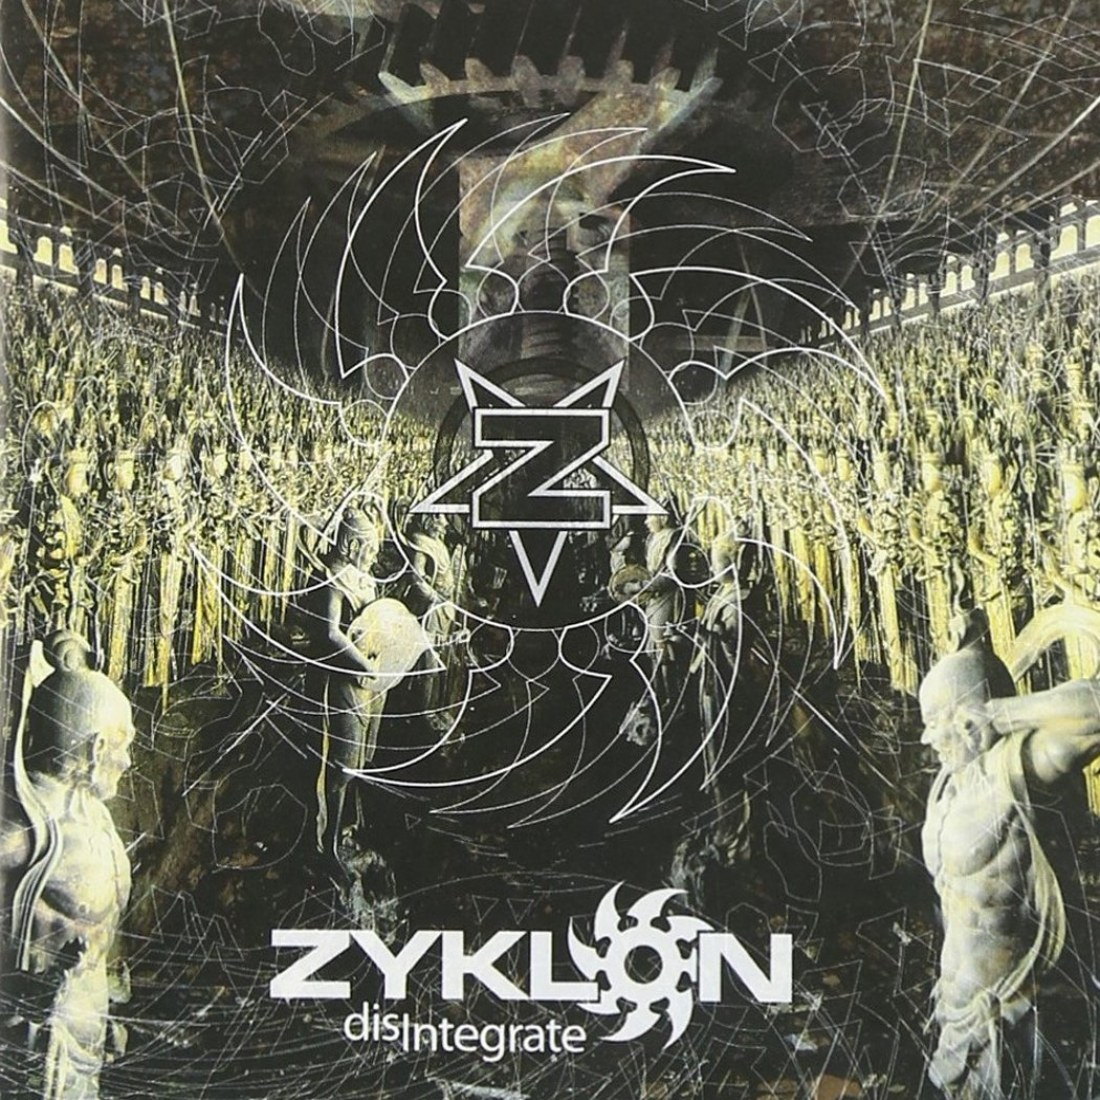 Review for Zyklon - Disintegrate